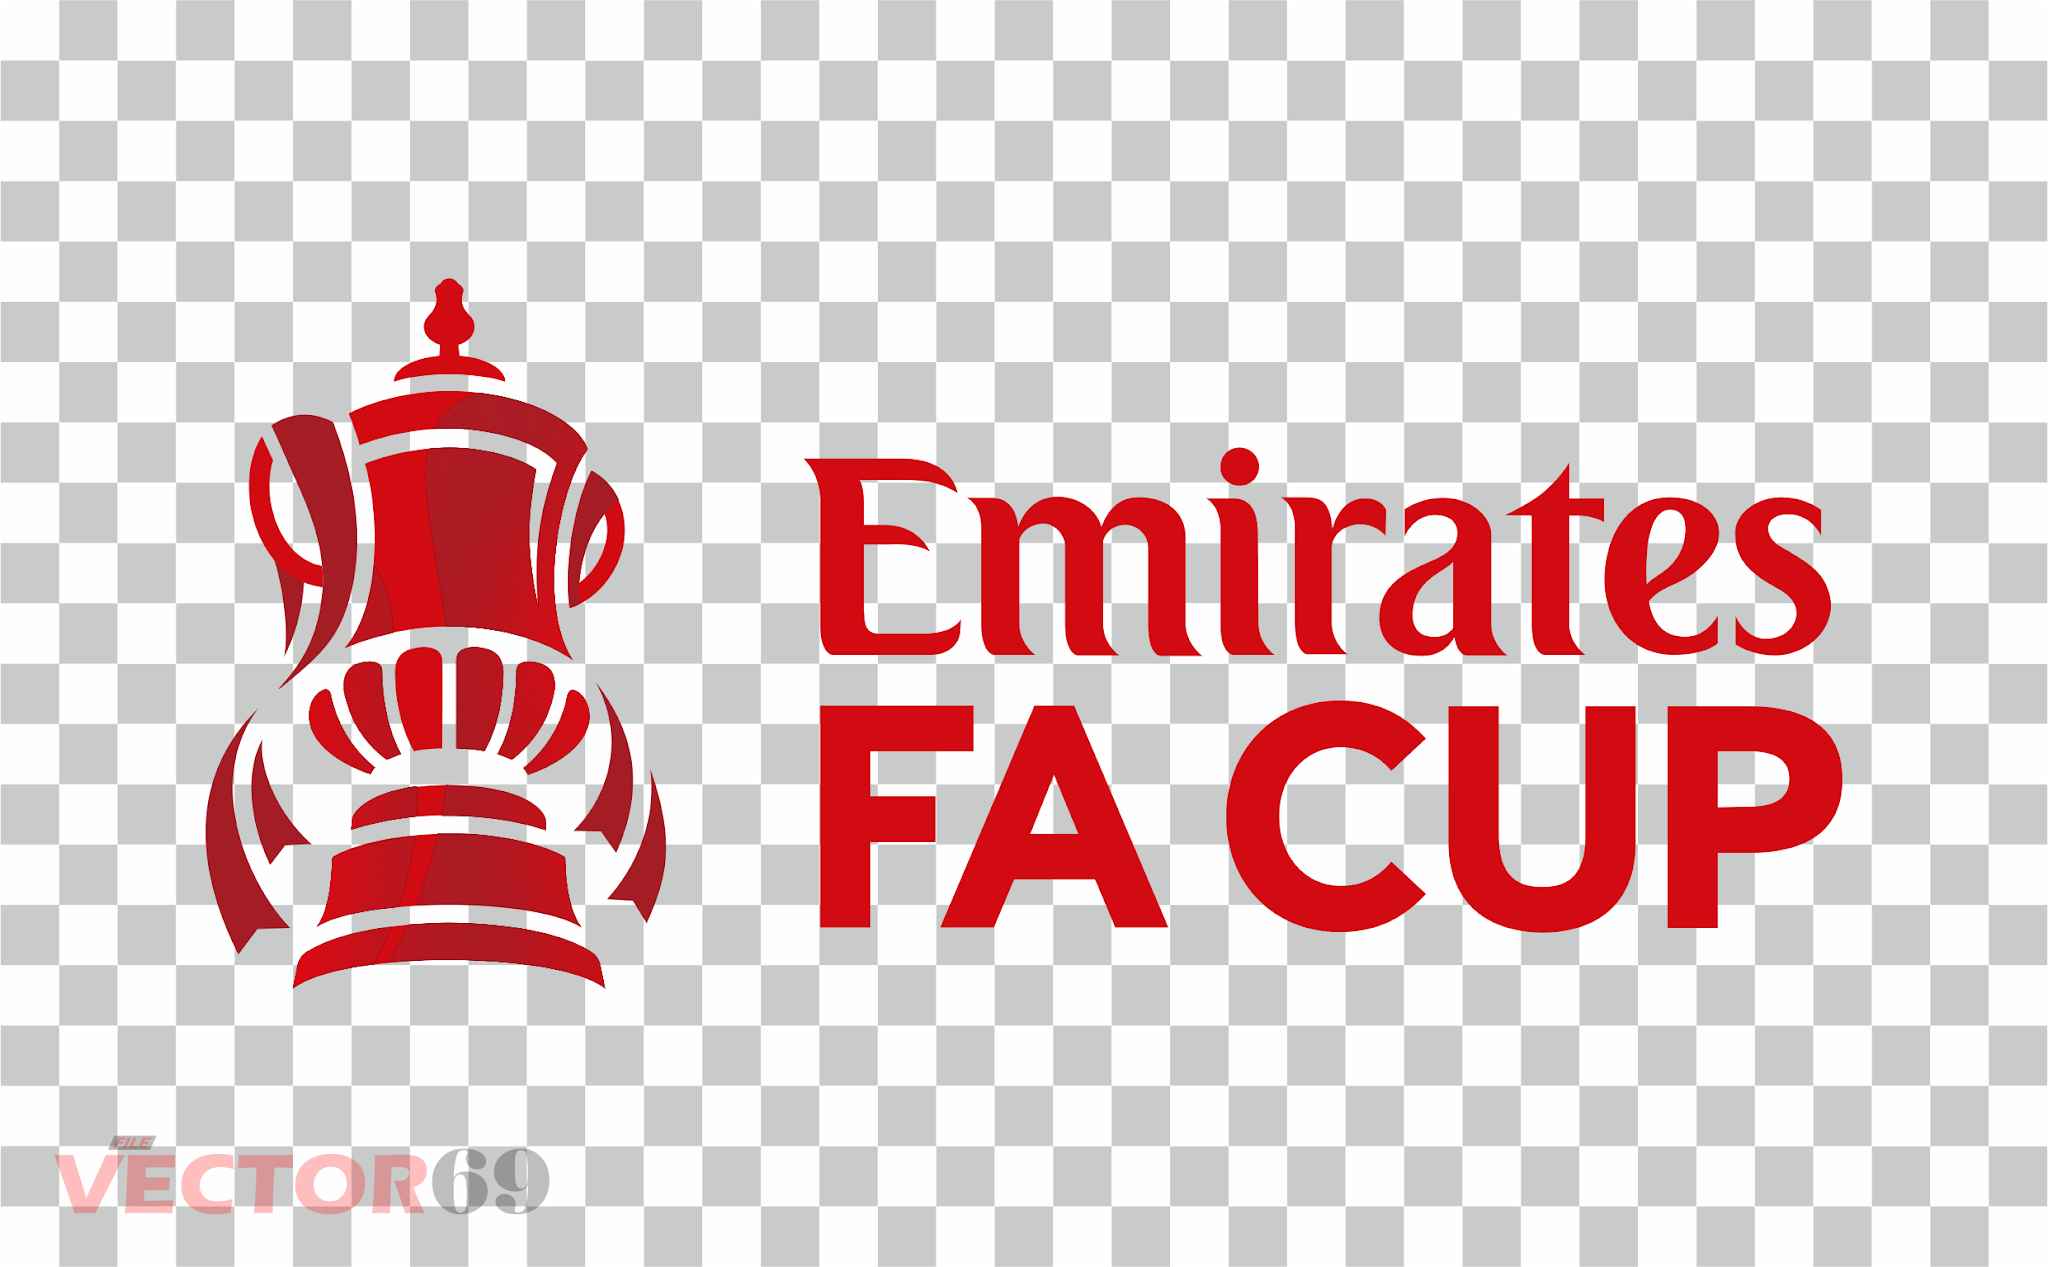 Emirates FA Cup New 2020 Logo - Download Vector File PNG (Portable Network Graphics)